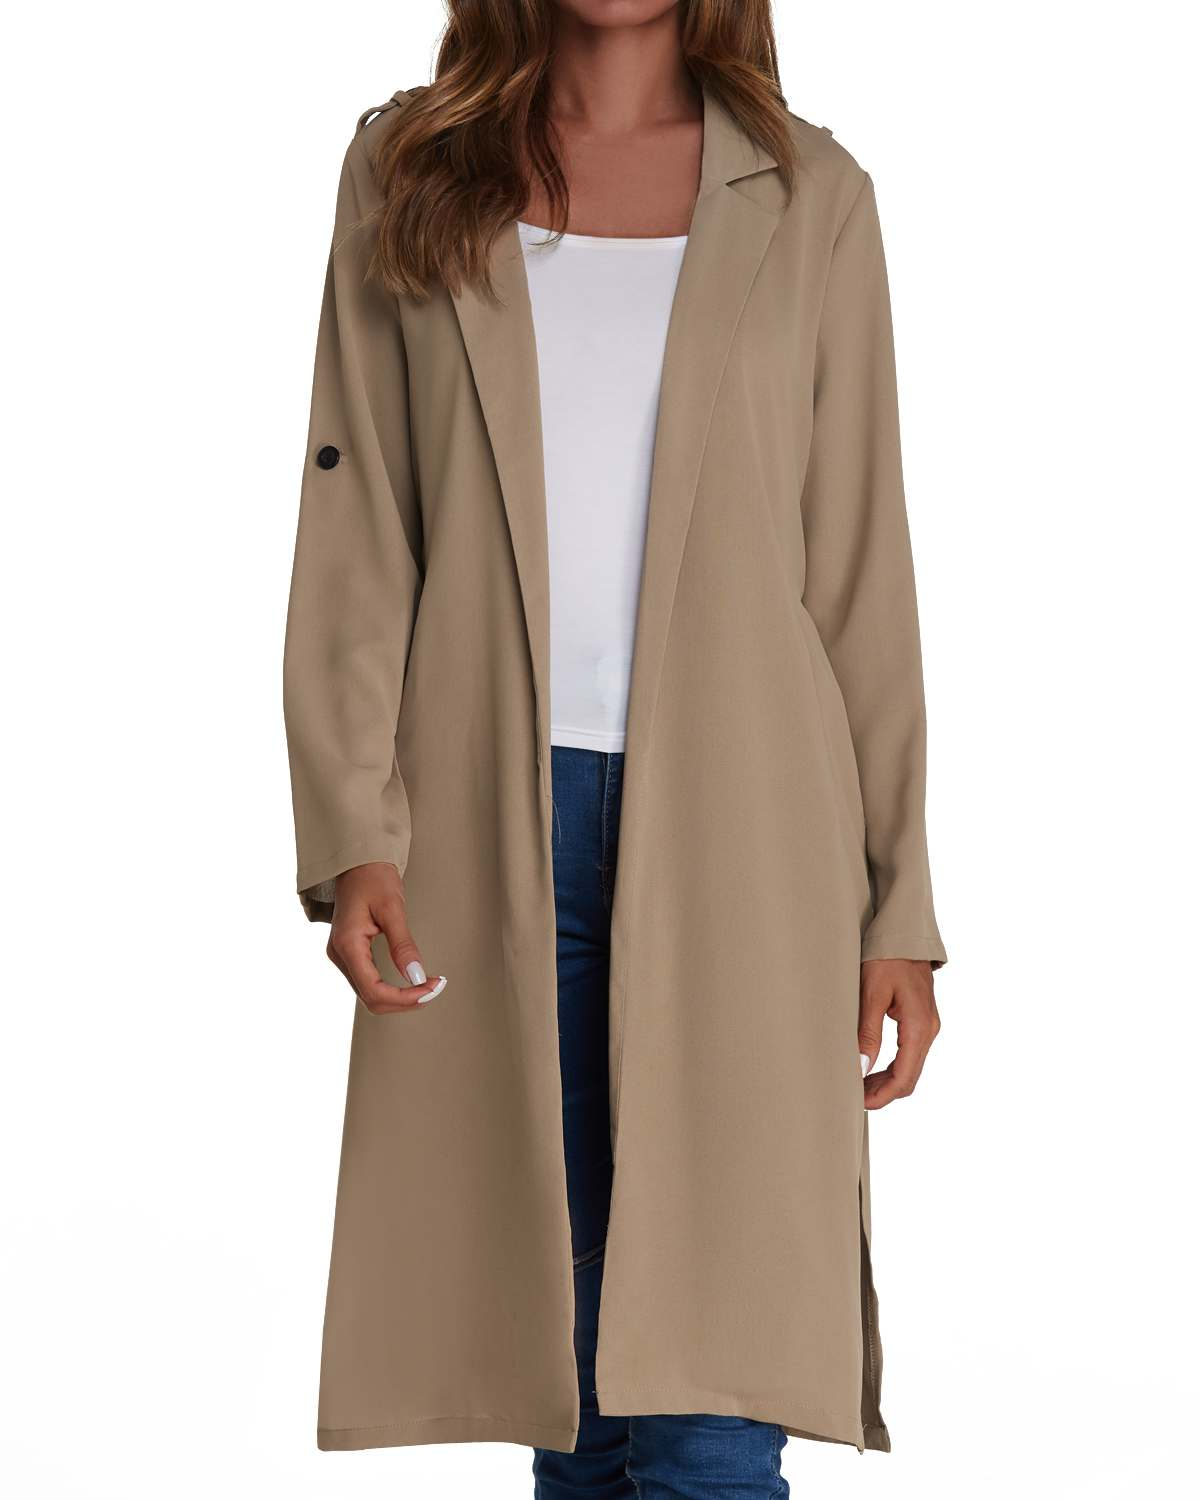 Plus Size Solid Coats Women Spring Autumn Full Sleeve Outerwear Long Trench Coat Casual Loose Coat Cardigan Overcoat 2XL